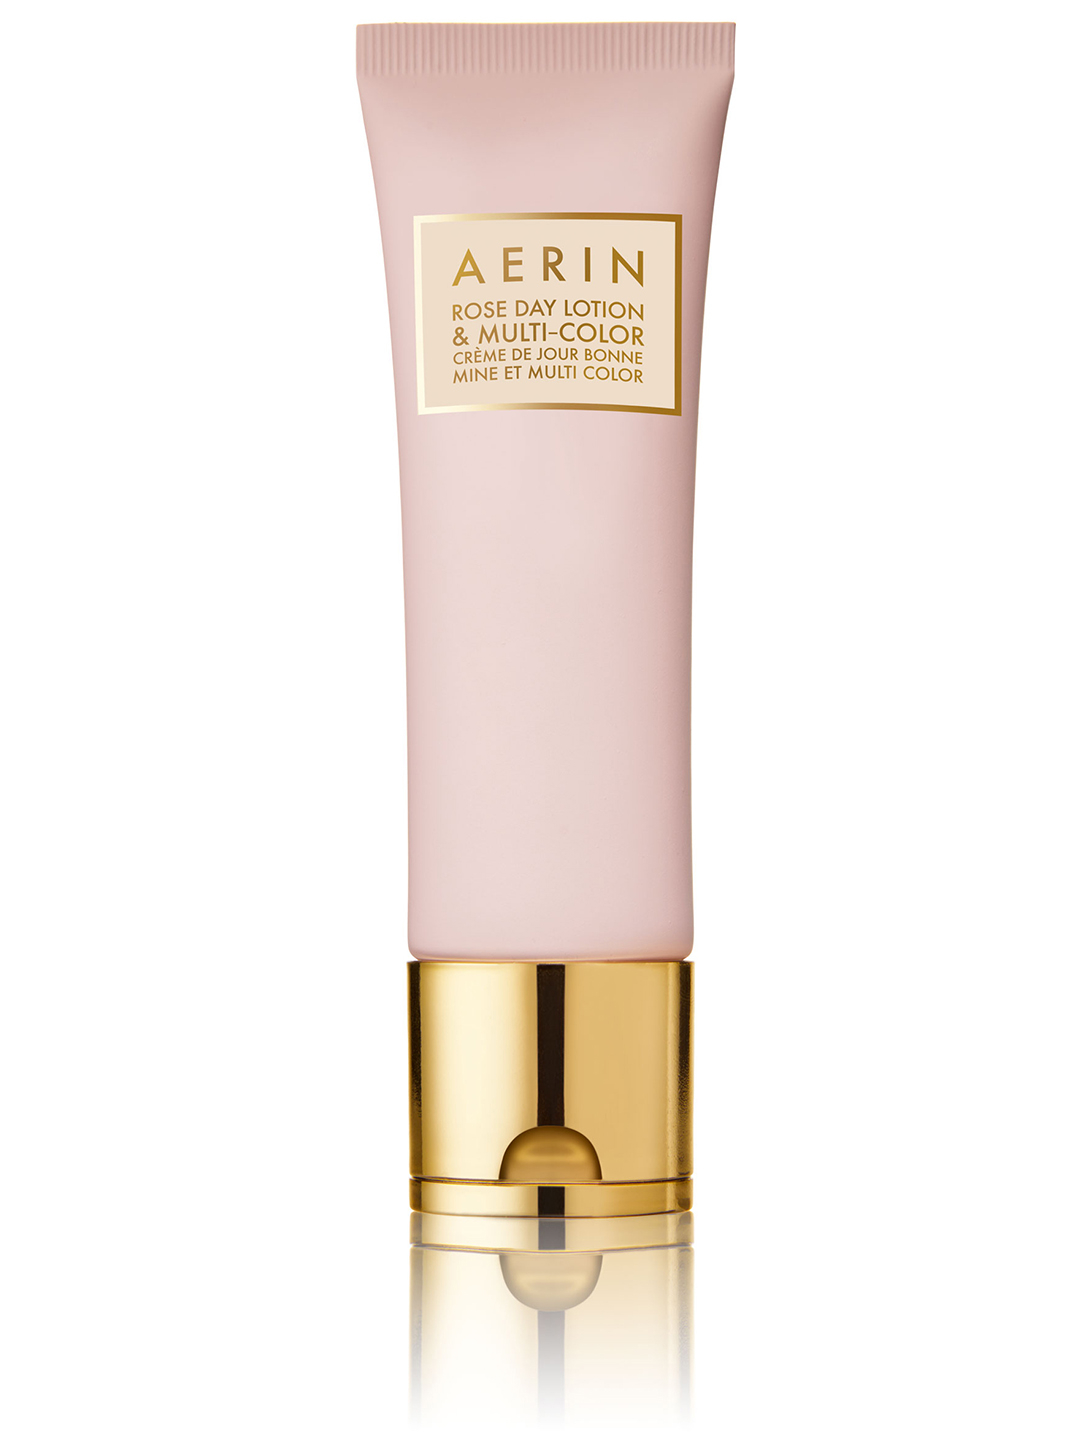 AERIN Rose Day Lotion & Multi-Color Day Lotion Beauty